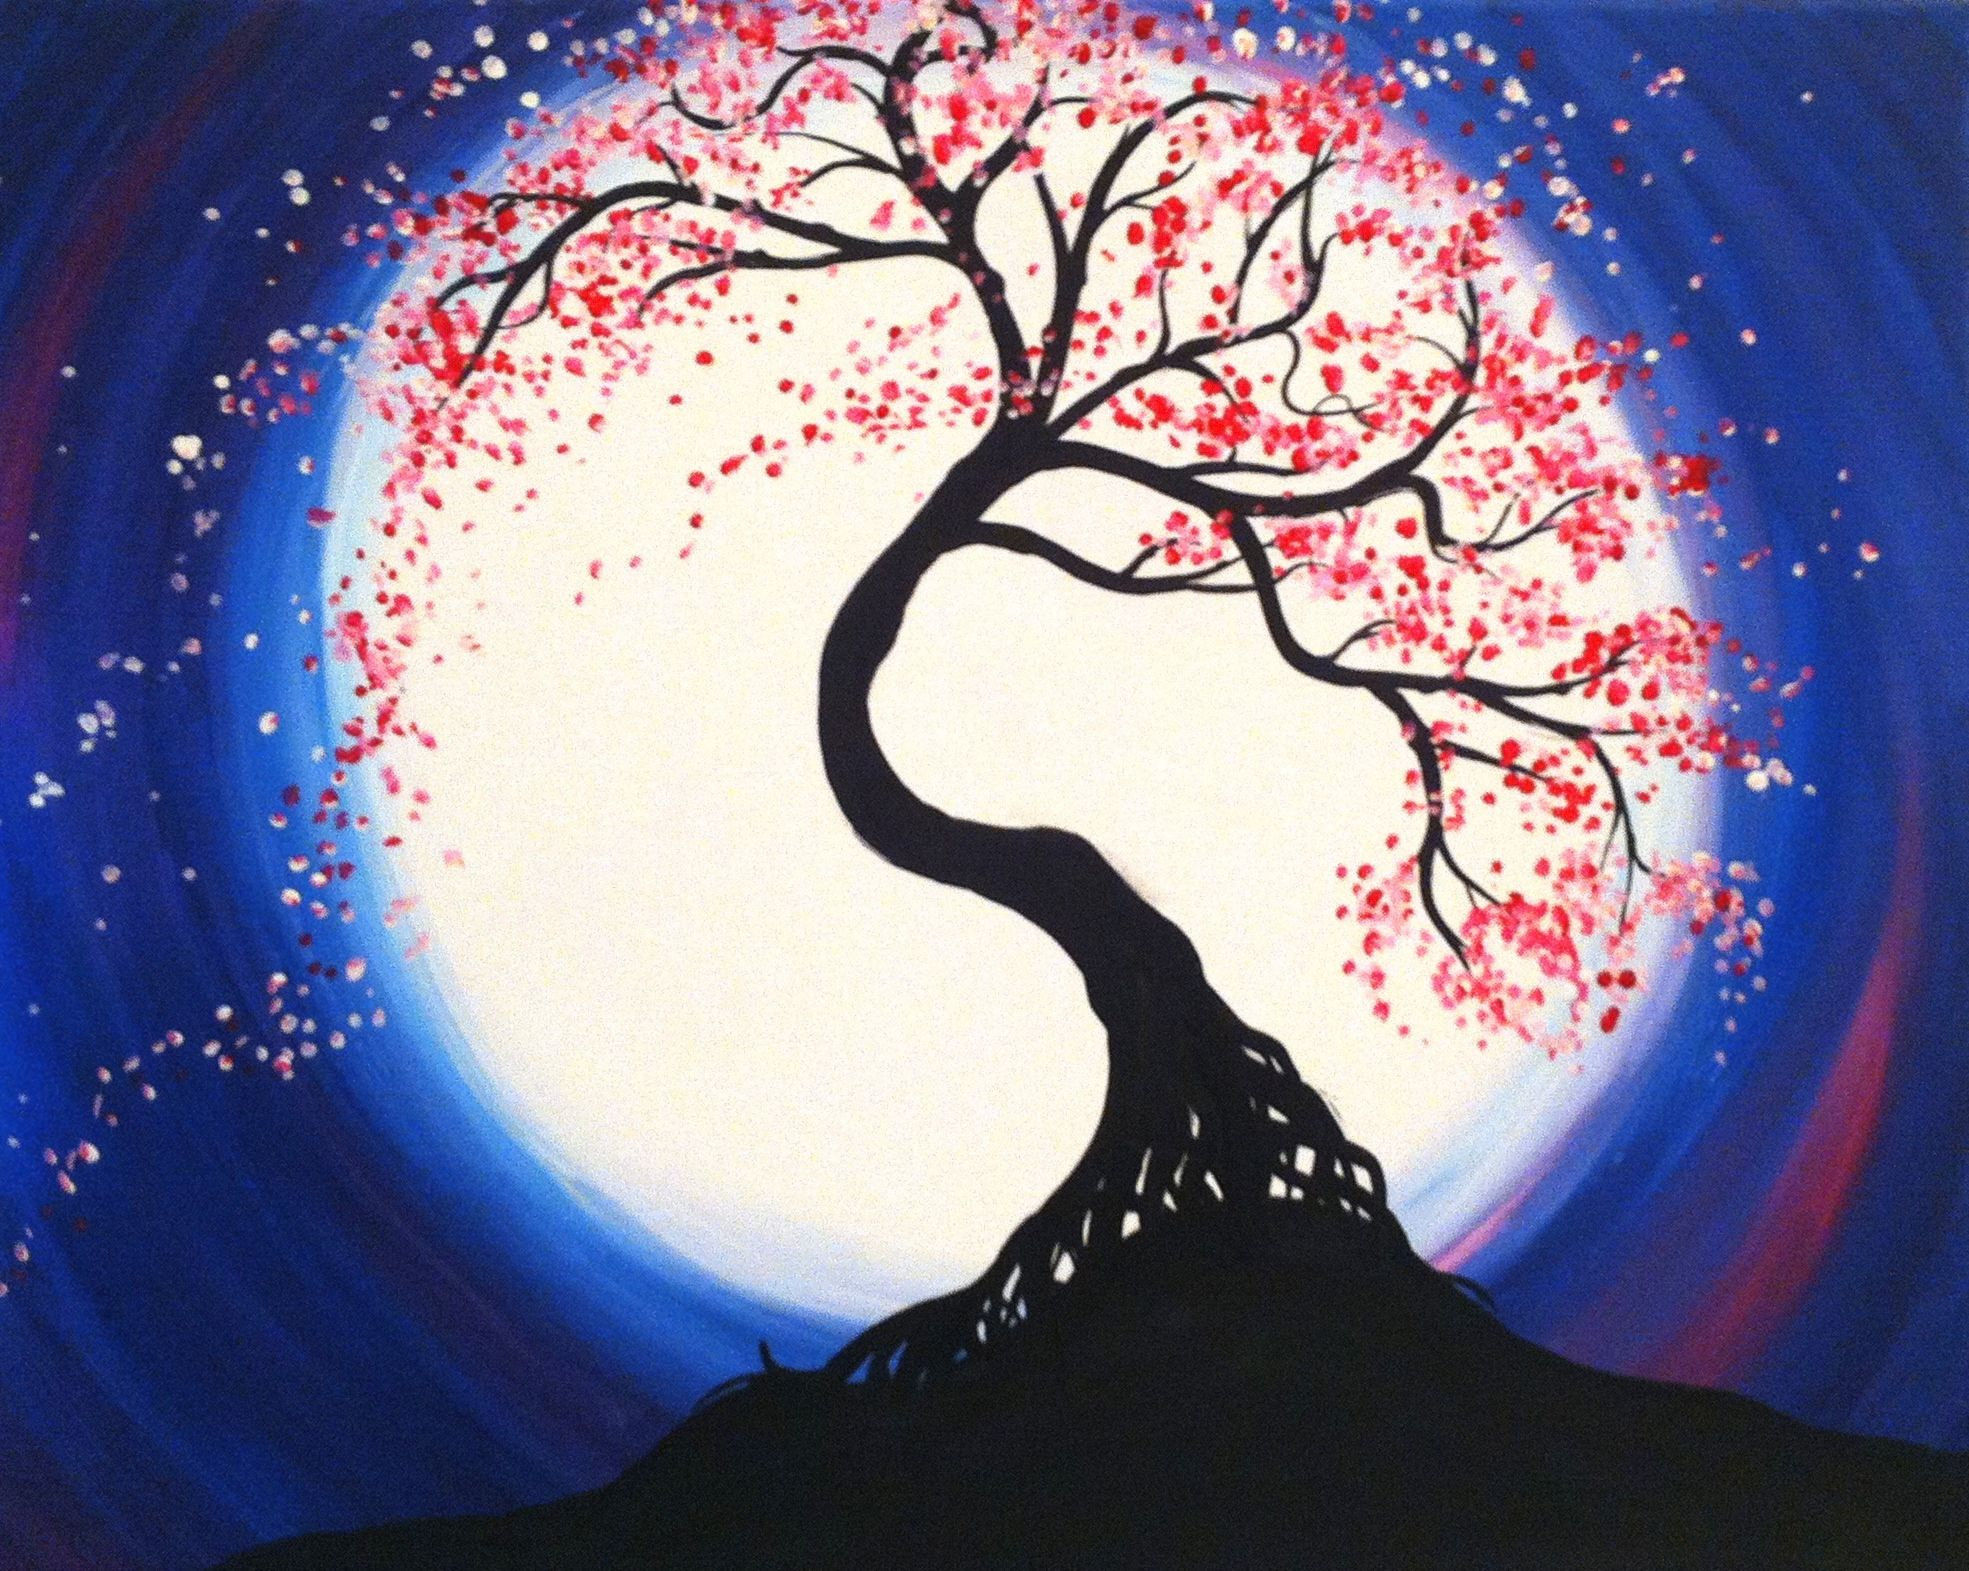 Check Out Moonlit Tree Of Life At Ninos Authentic Italian